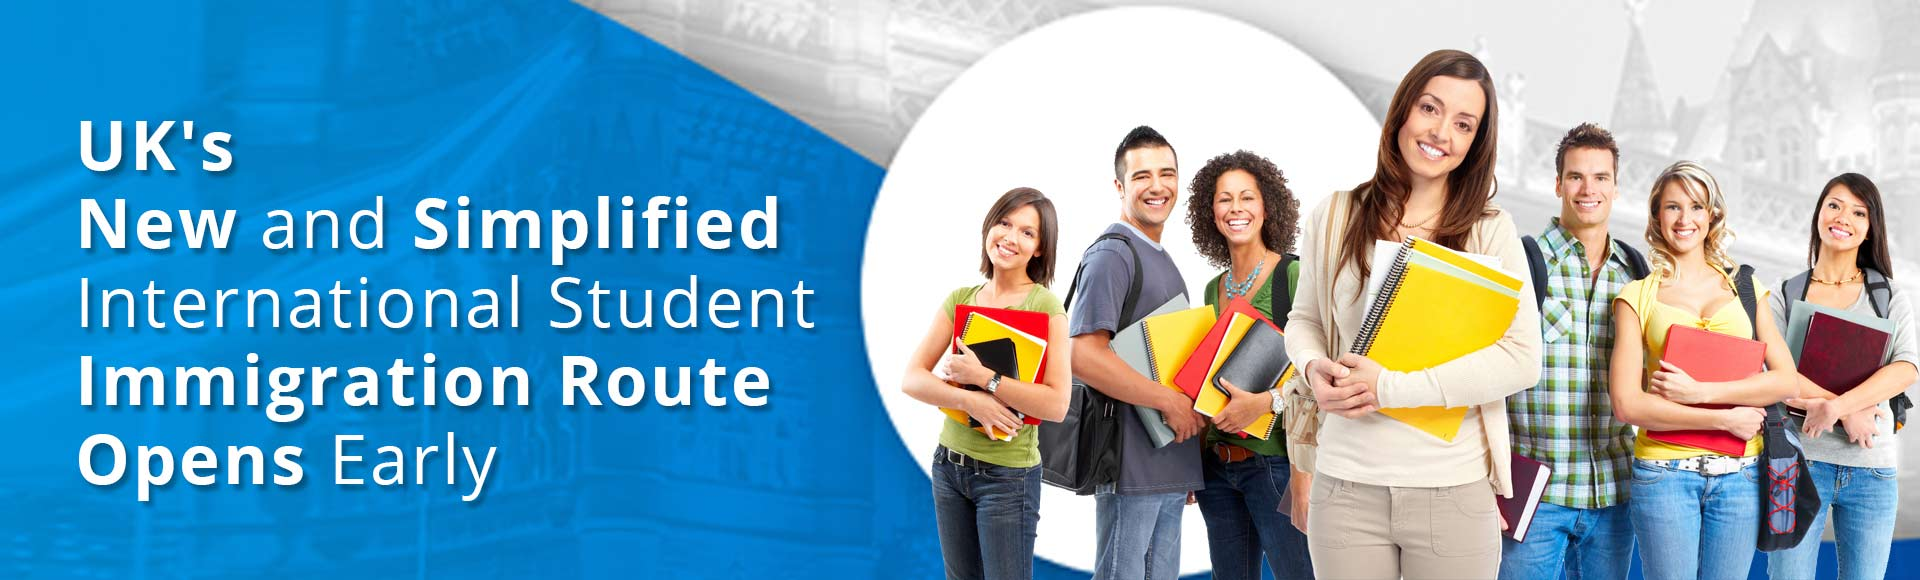 UK's new and simplified international student immigration route opens early